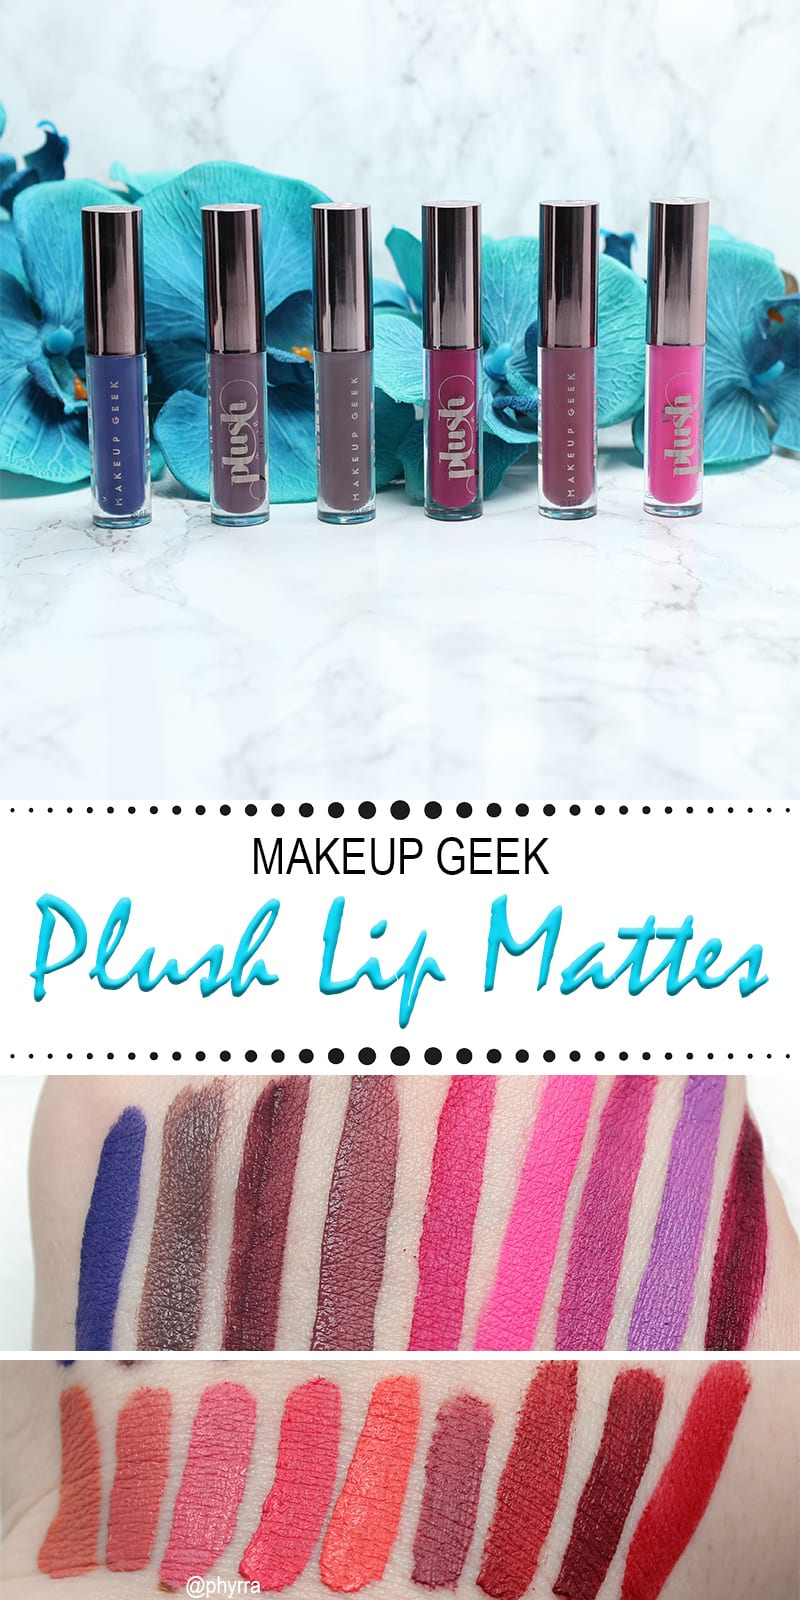 Makeup Geek Plush Lip Mattes Review Swatches Looks